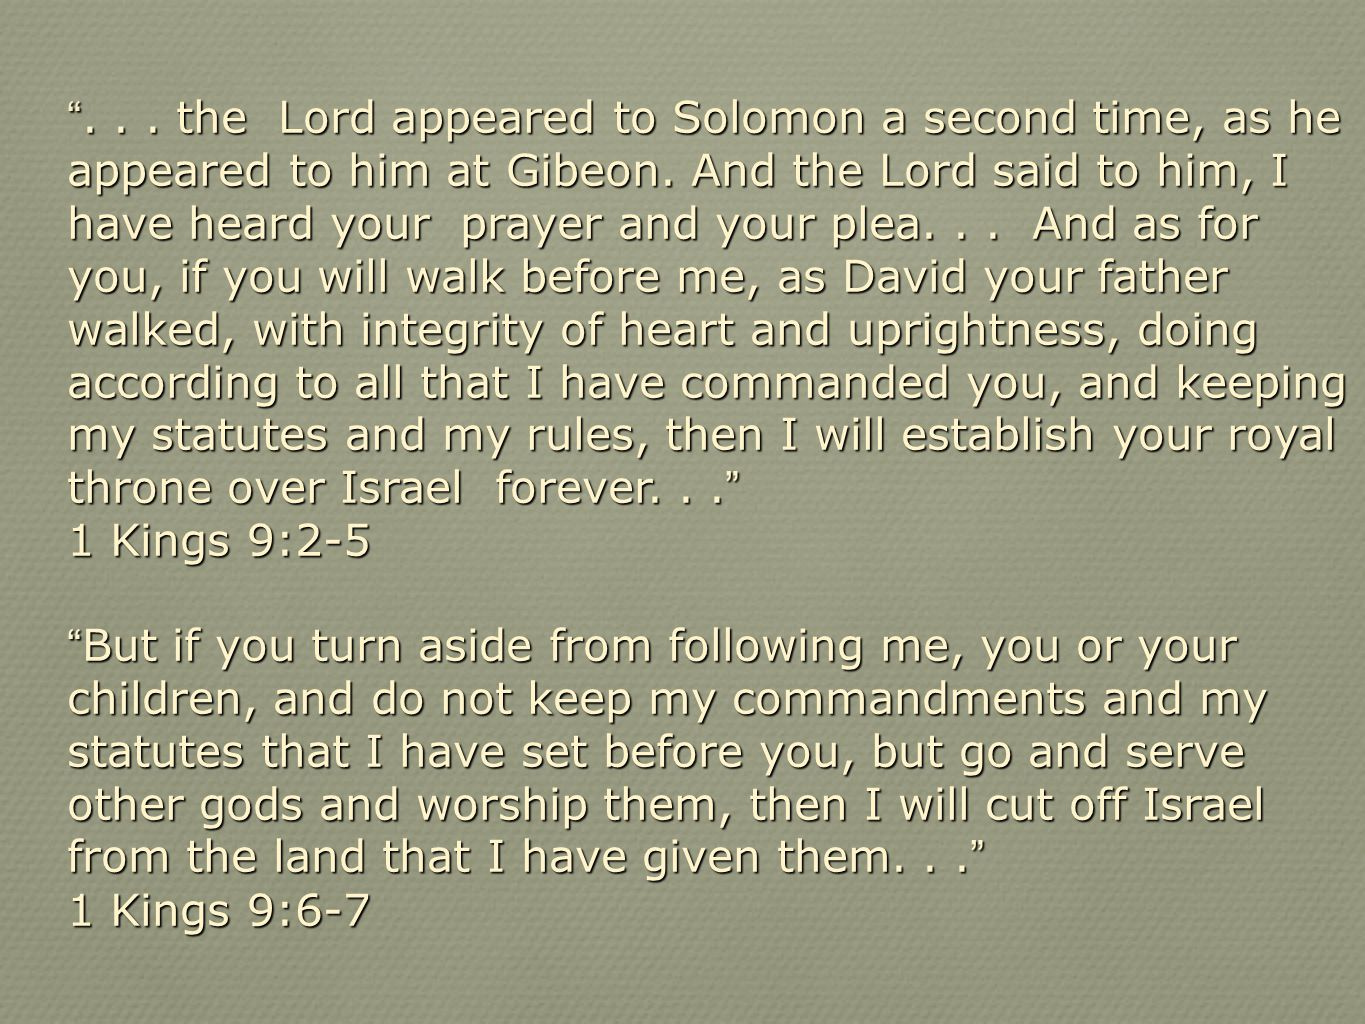 """... the Lord appeared to Solomon a second time, as he appeared to him at Gibeon. And the Lord said to him, I have heard your prayer and your plea..."